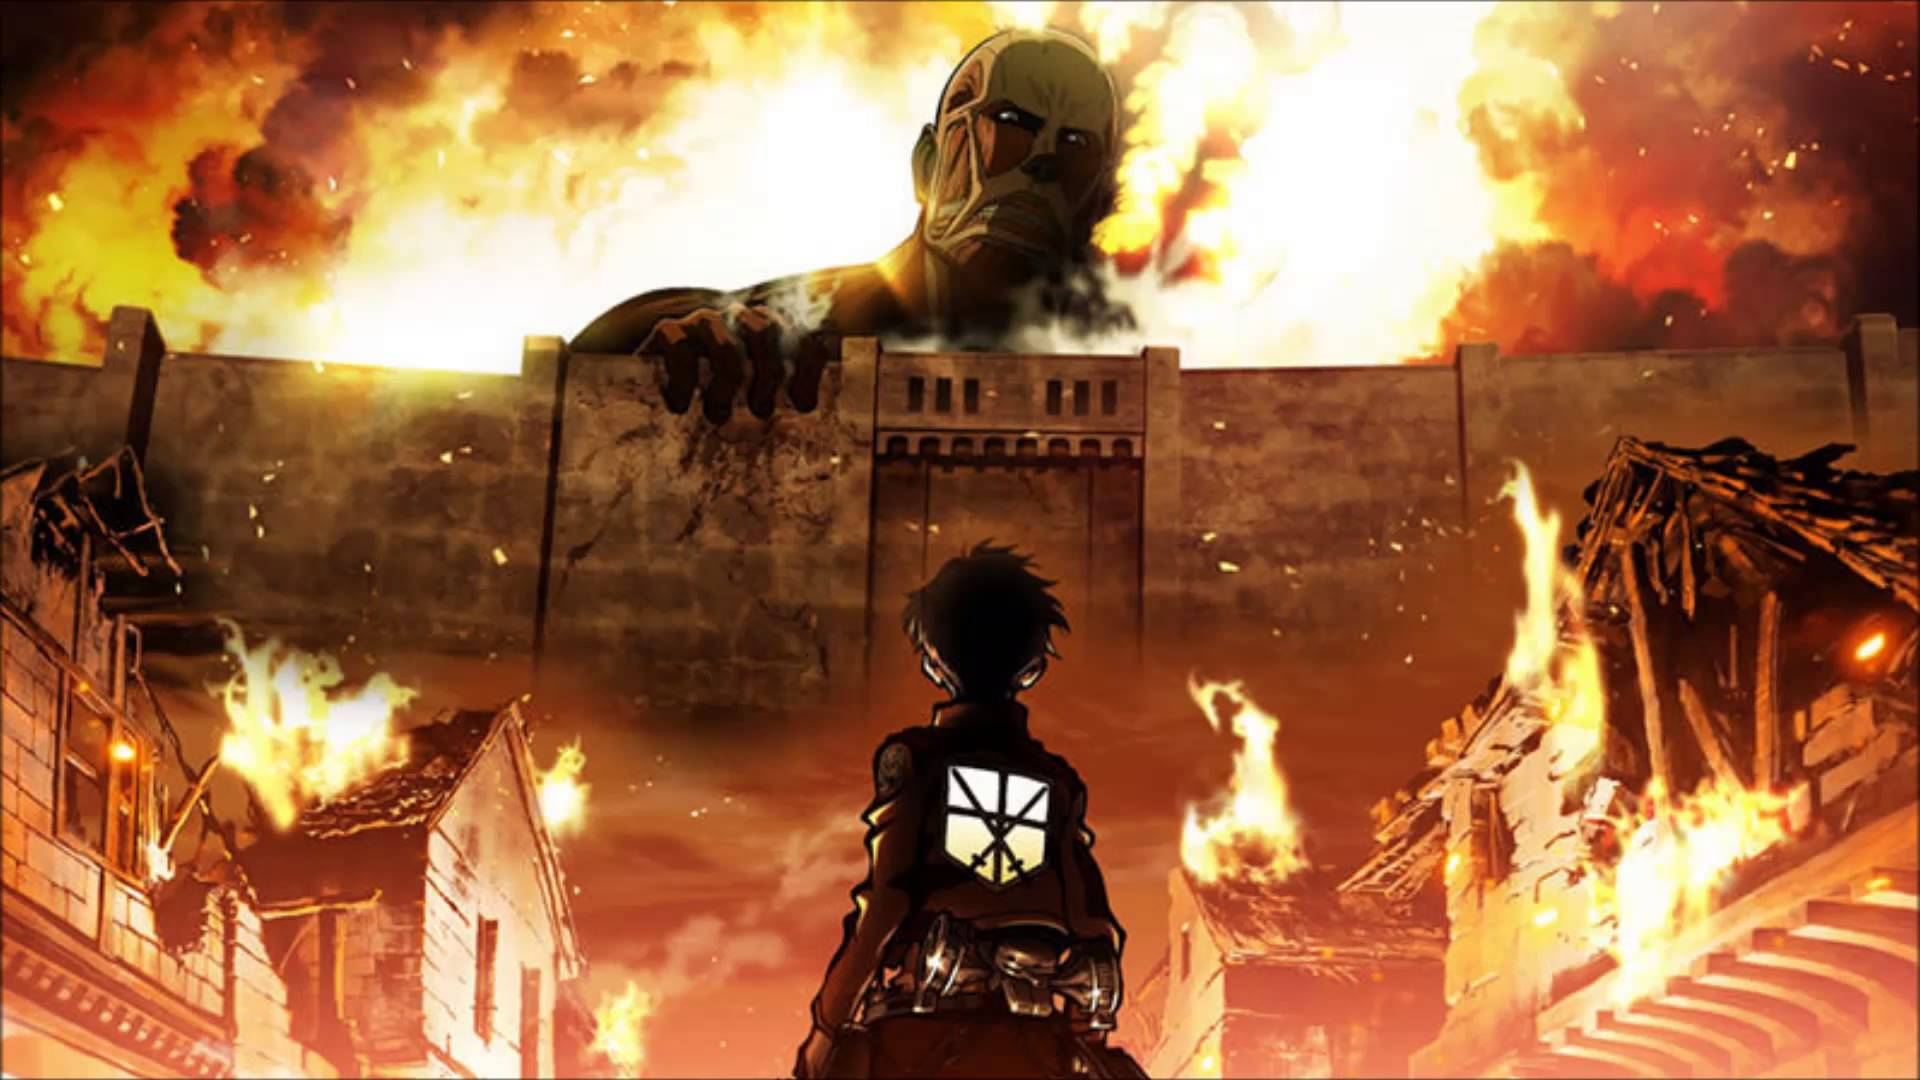 Attack on Titan Chapter 136 Release Date, Where to Read AOT Chapter 136?